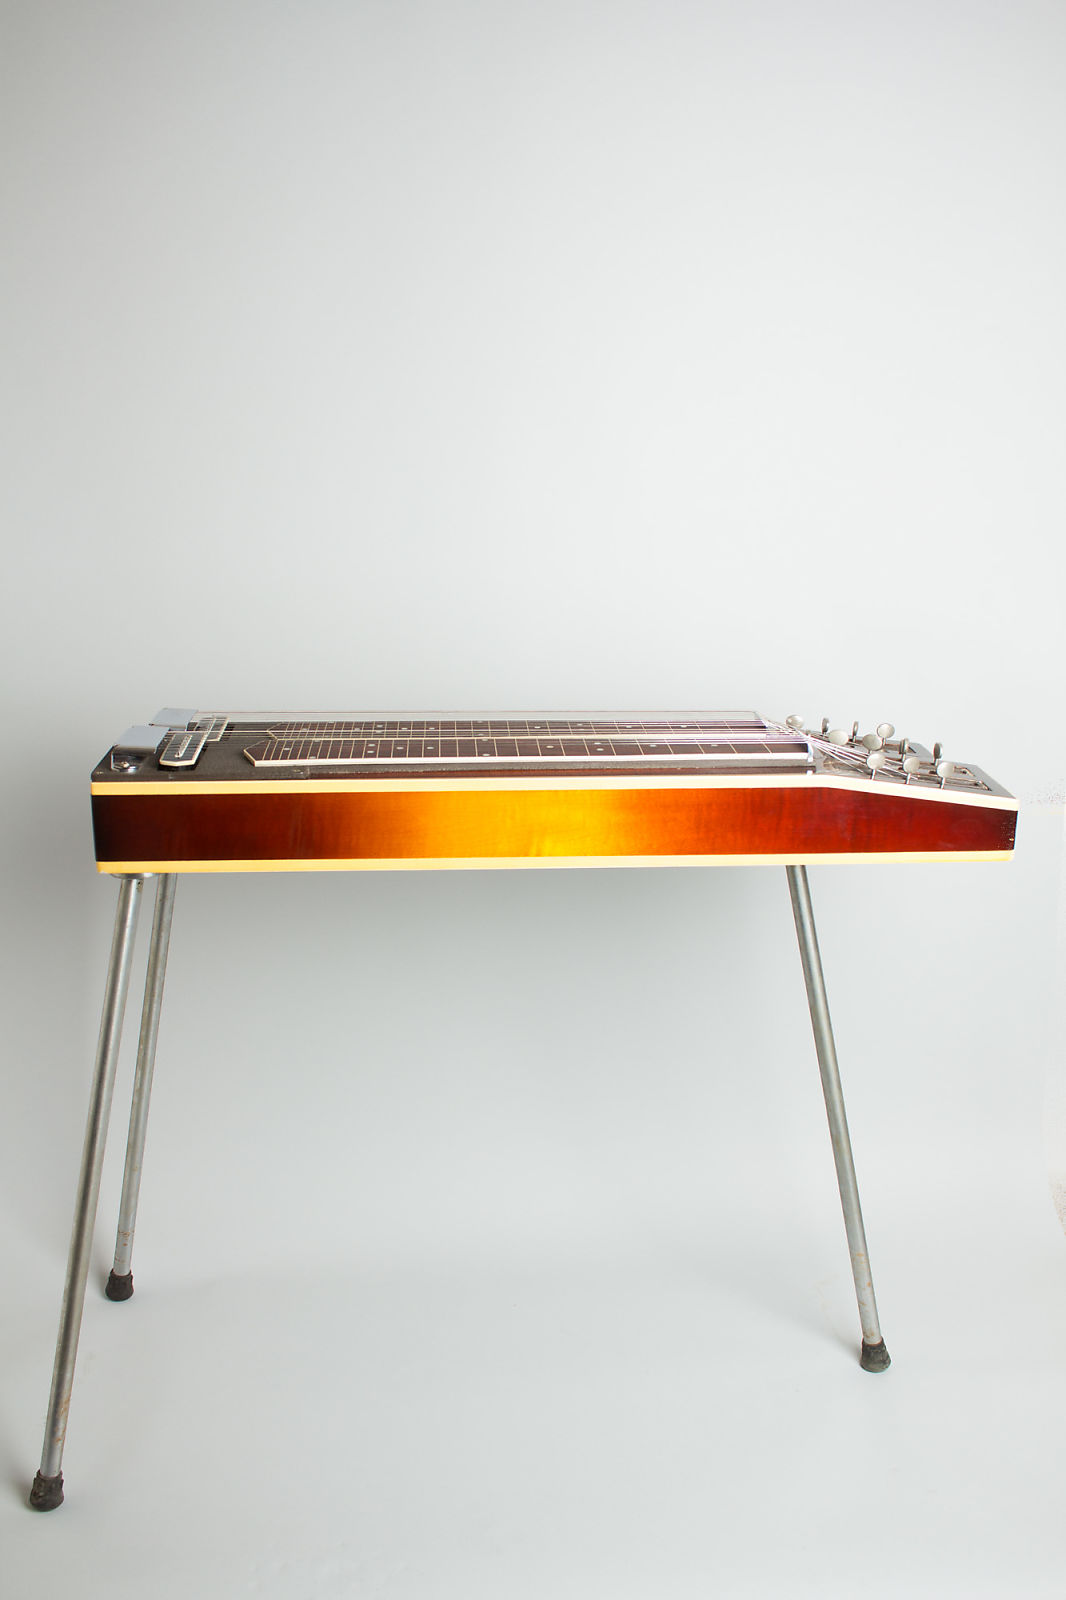 Gibson  Console Grand High Steel Electric Guitar (1940), ser. #F1552-6, original tweed hard shell case.